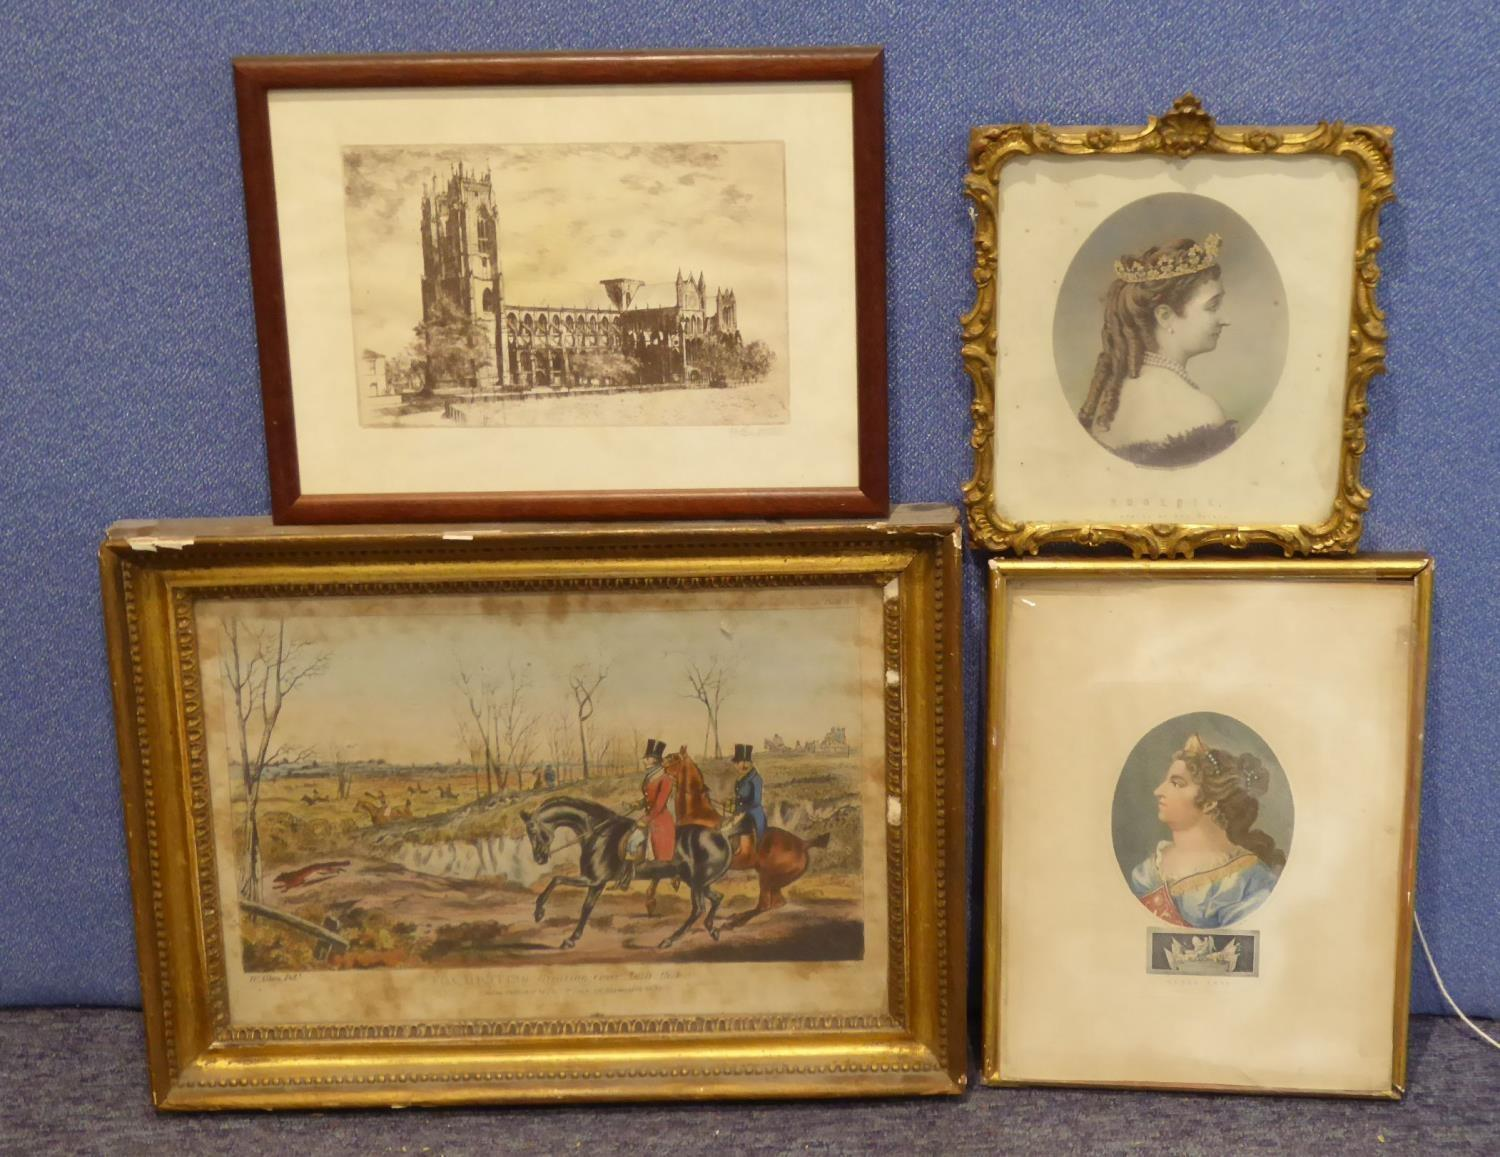 Lot 75 - T. SUTHERLAND AFTER HENRY ALKEN, HAND-COLOURED LITHOGRAPH 'Fox Hunting Plate II Breaking Cover -